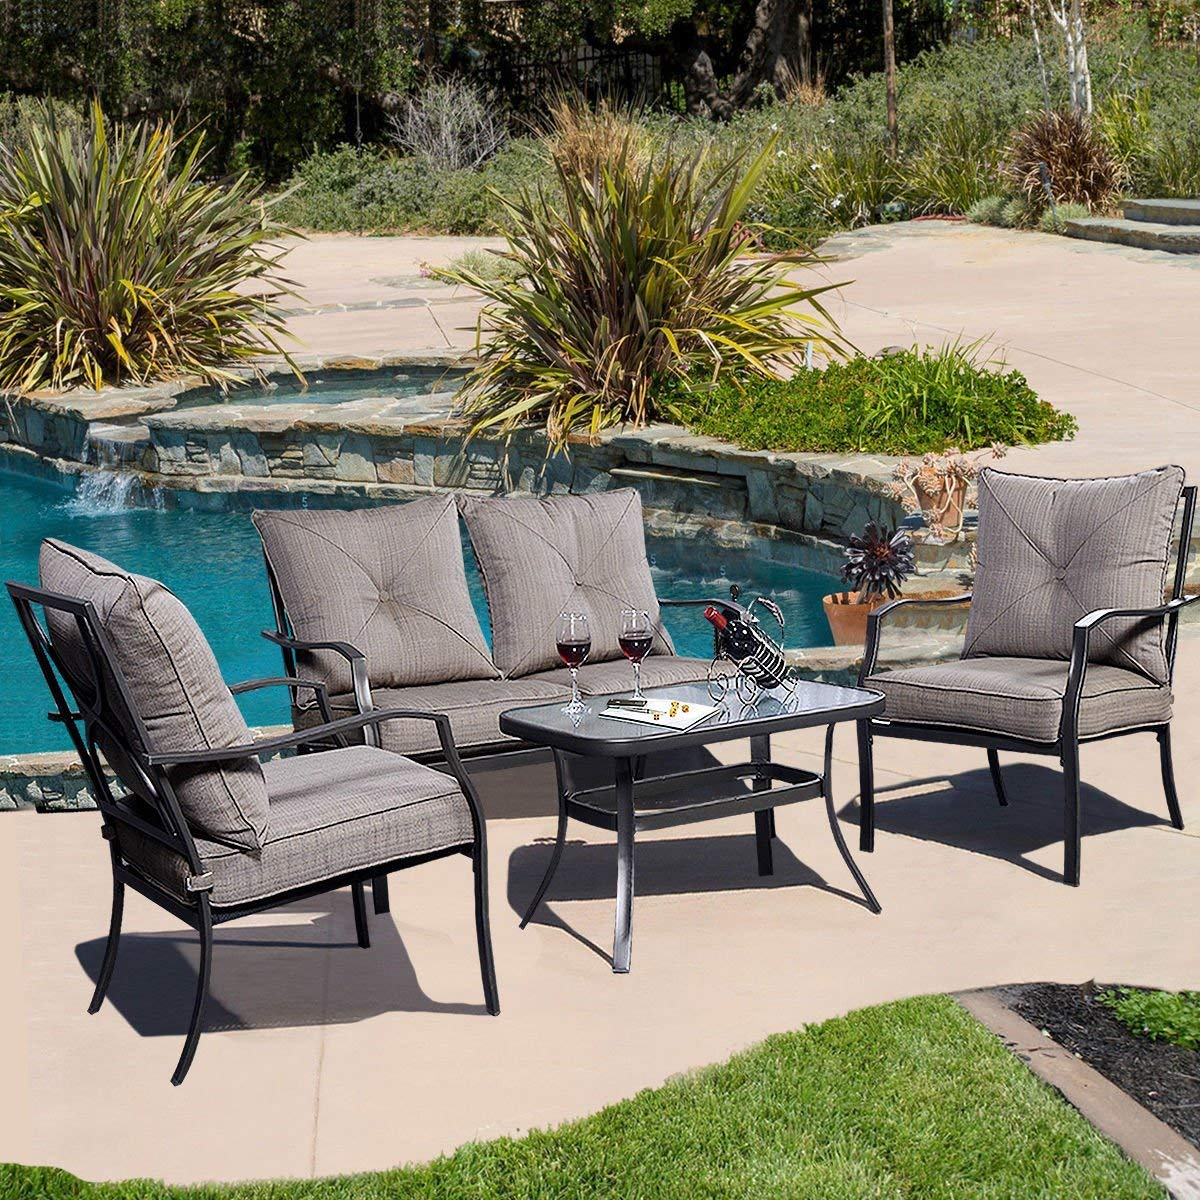 Exceptionnel Giantex 4 PCS Steel Frame Patio Furniture Tea Table U0026 Chairs Set Outdoor  Garden Pool Giantex 4 PCS Steel Frame Patio Furniture Tea Table U0026 Chairs  Set ...